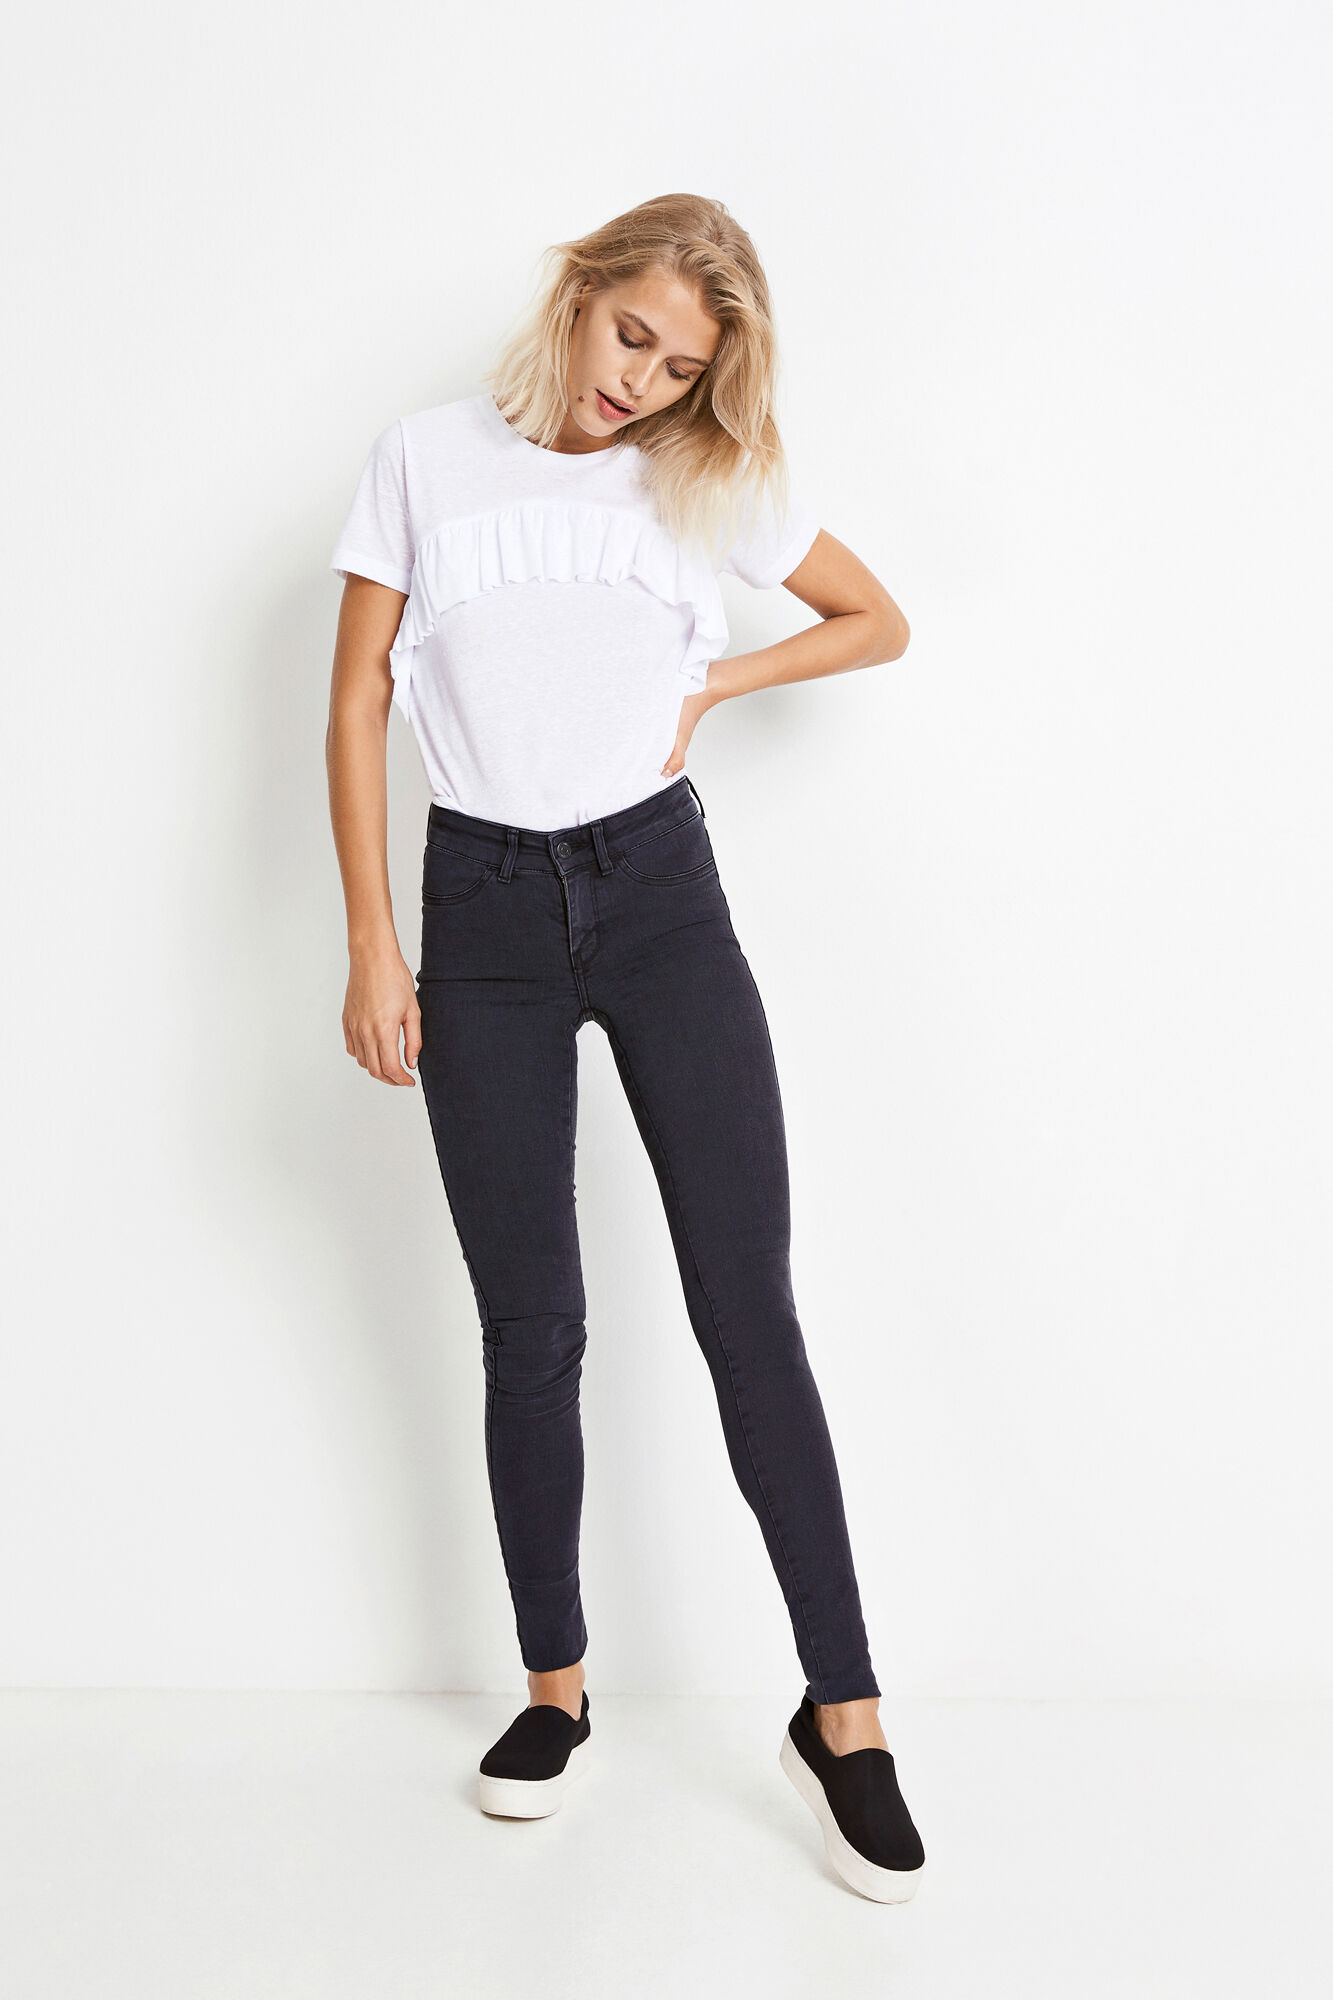 ENBLAIR JEANS WORN BLACK 6292, WORN BLACK